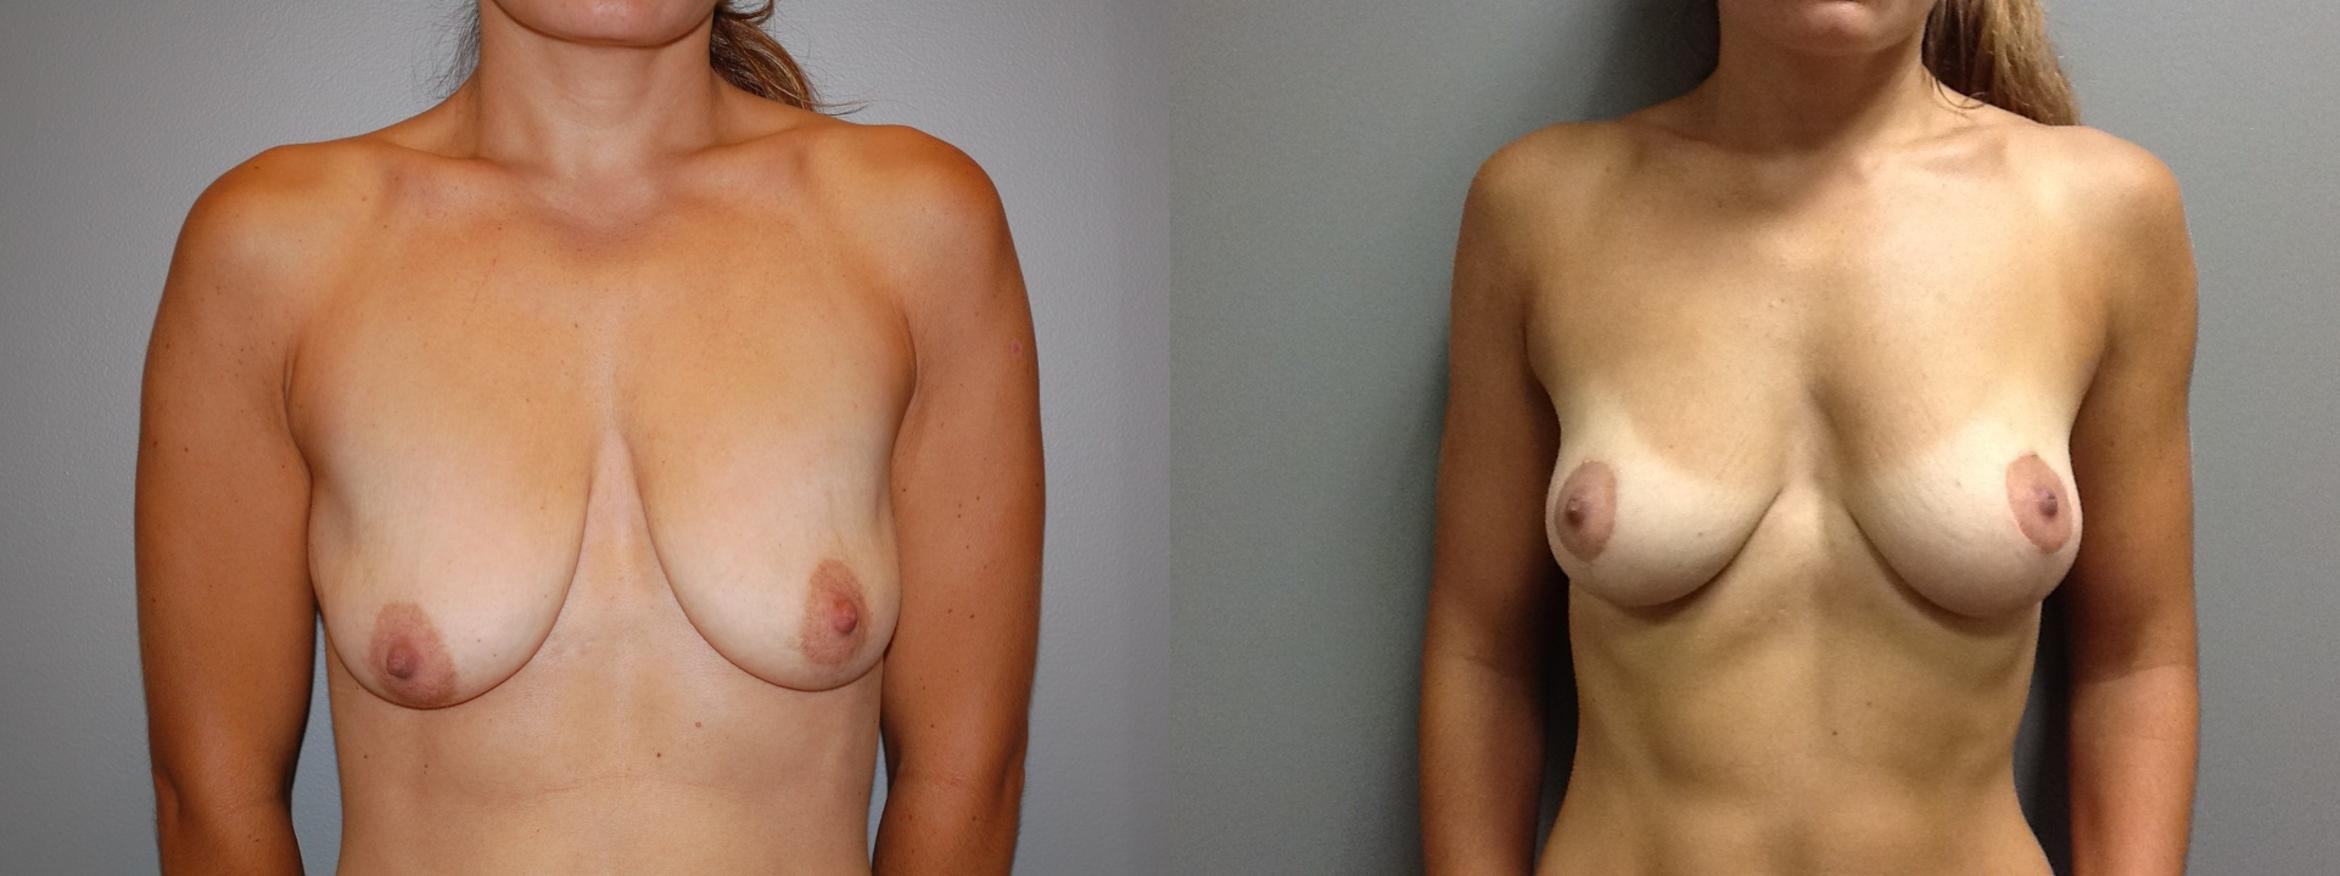 Breast Lift Before & After Photo | Longmeadow, MA | Aesthetic Plastic & Reconstructive Surgery